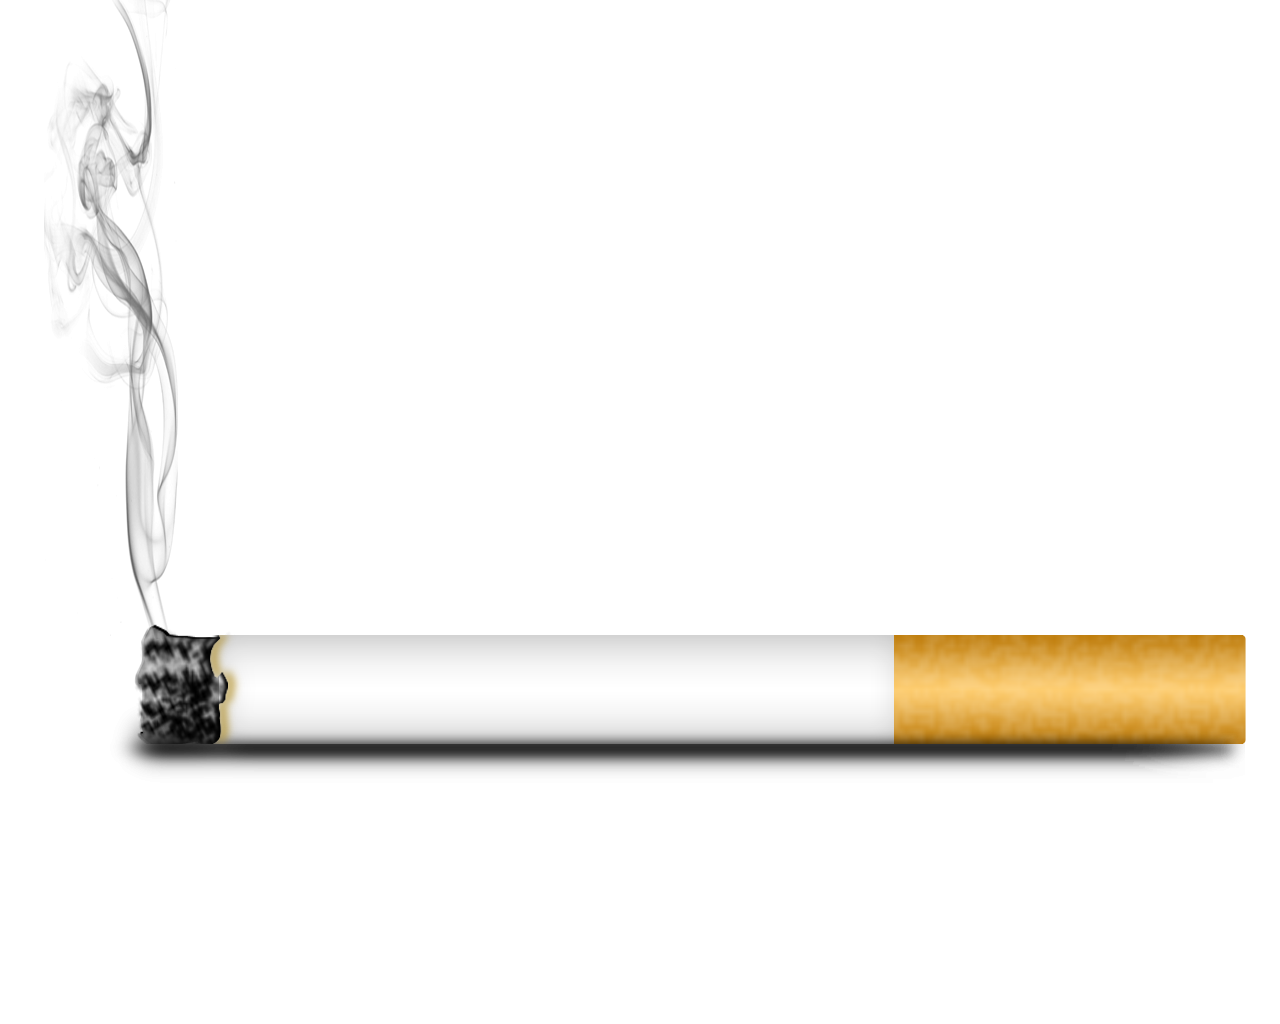 collection of transparent. Cigar clipart cigarette